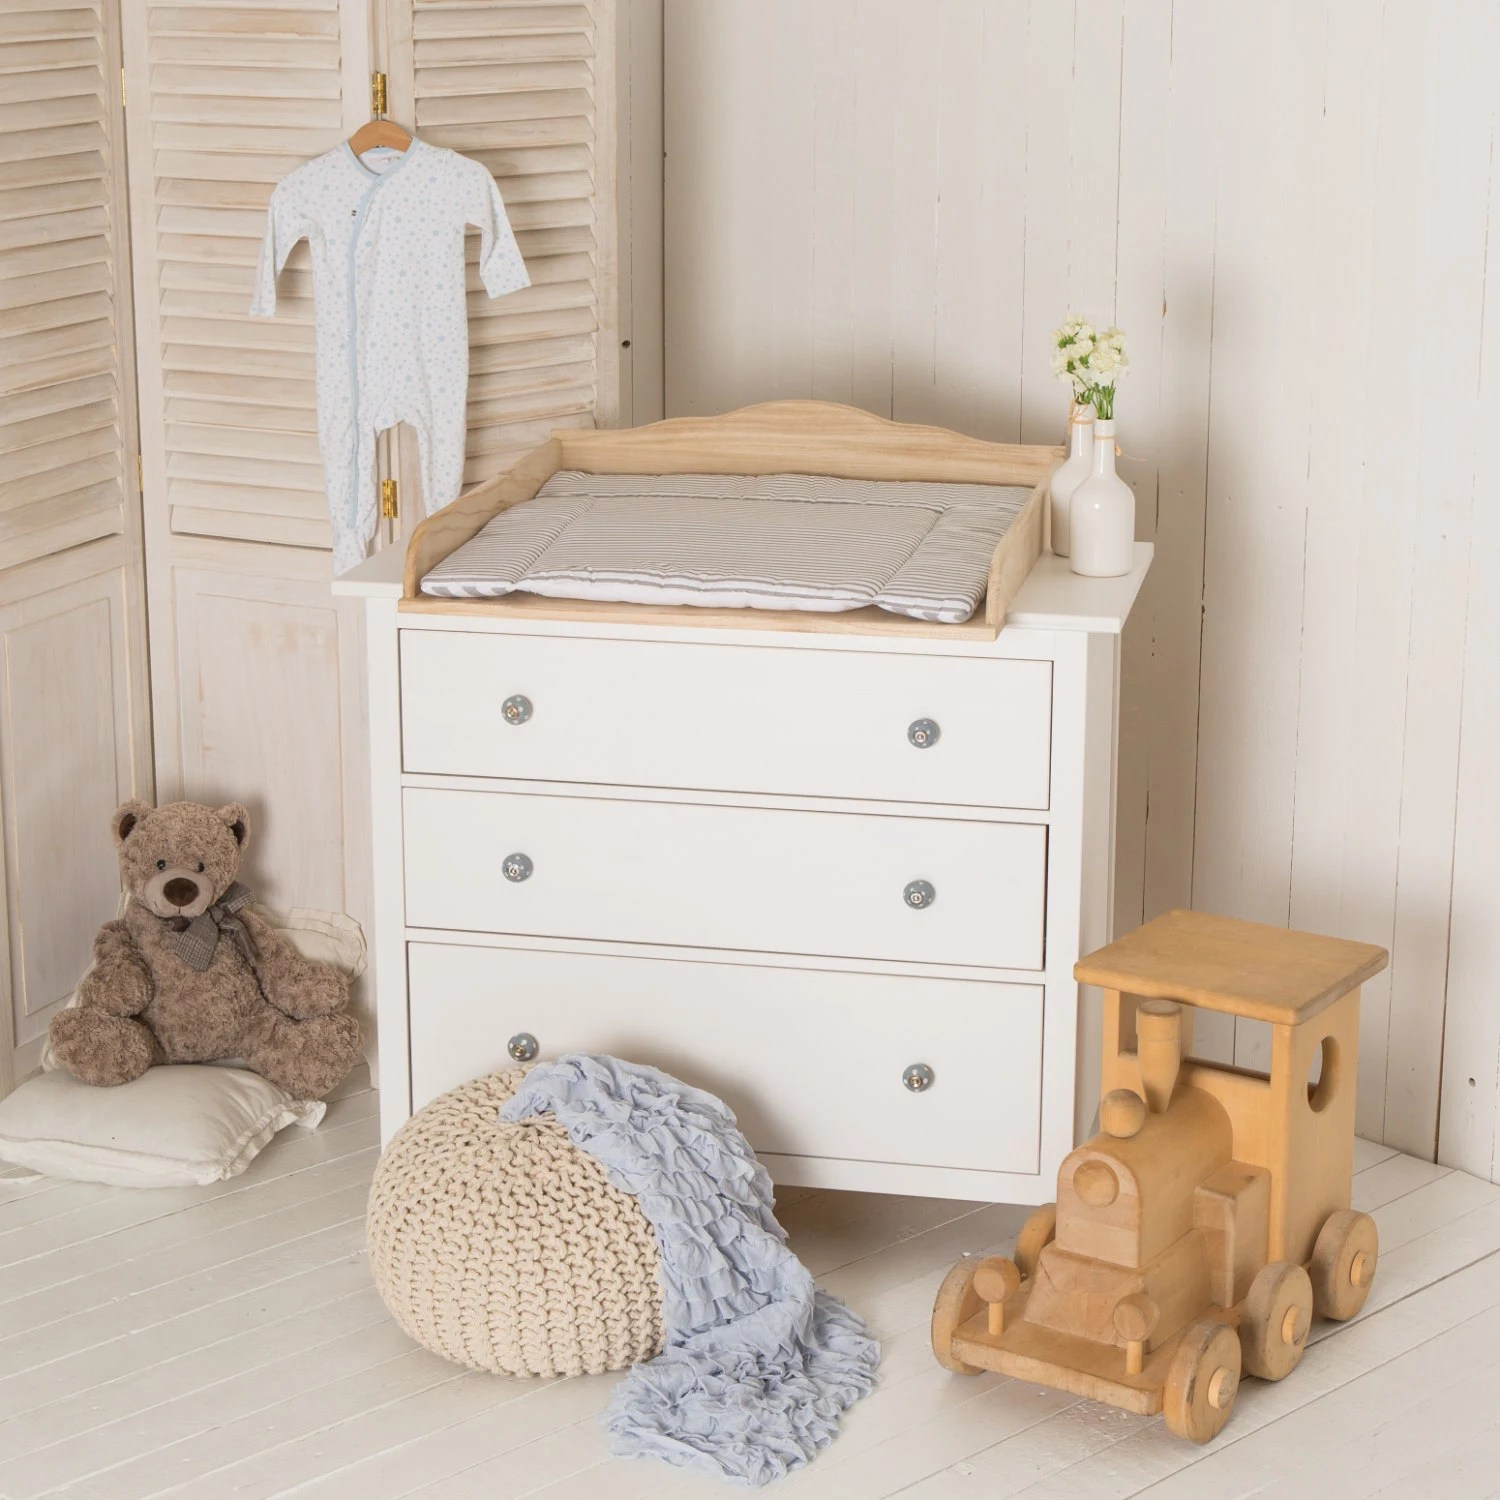 Ikea Malm Kommode Youtube Puckdaddy Natural Wood Changing Unit Table Top Cot Top For Ikea Malm Chest Of Drawers Without Dresser